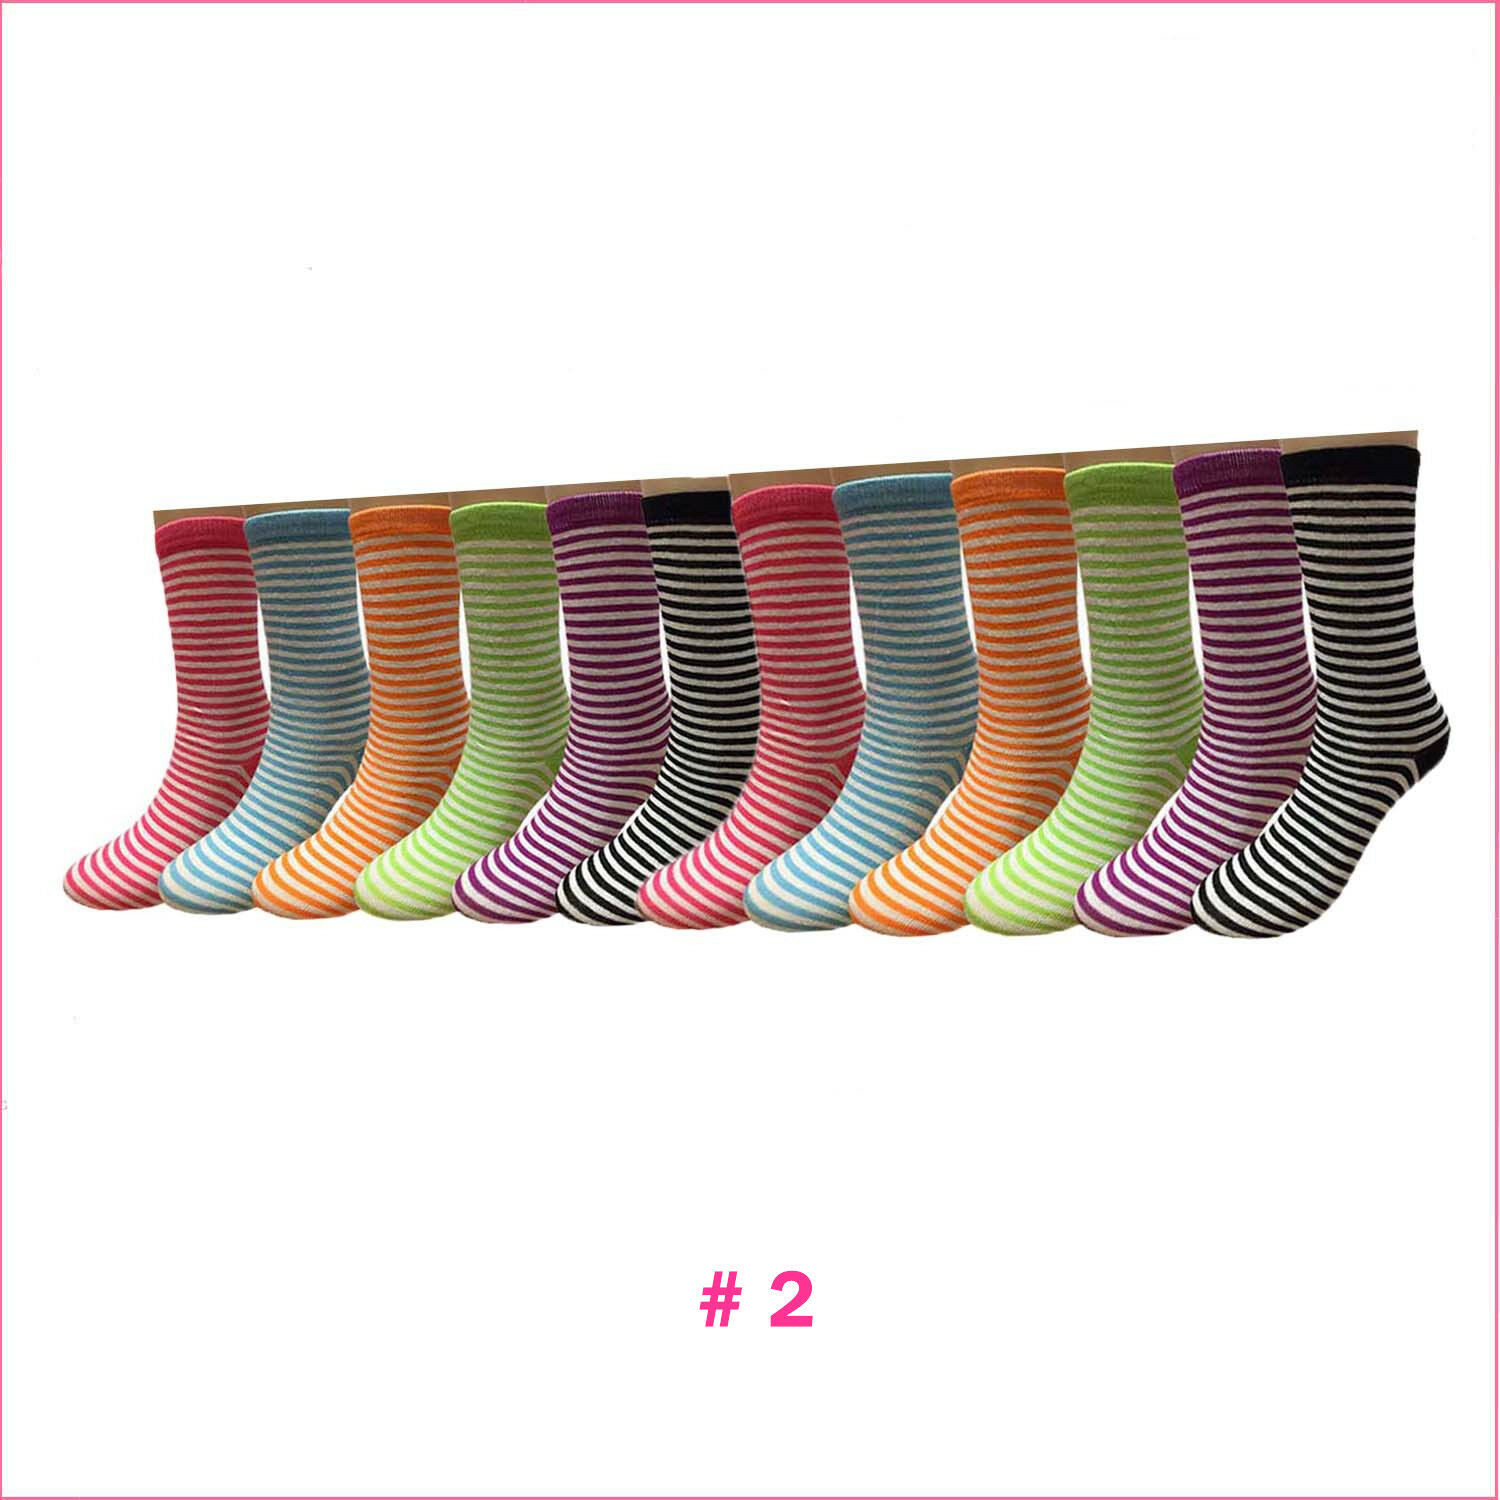 Image 21 - New-Lot-12-Pairs-Dozen-Womens-Solid-Assorted-Styles-Crew-Socks-Fashion-Size-9-11